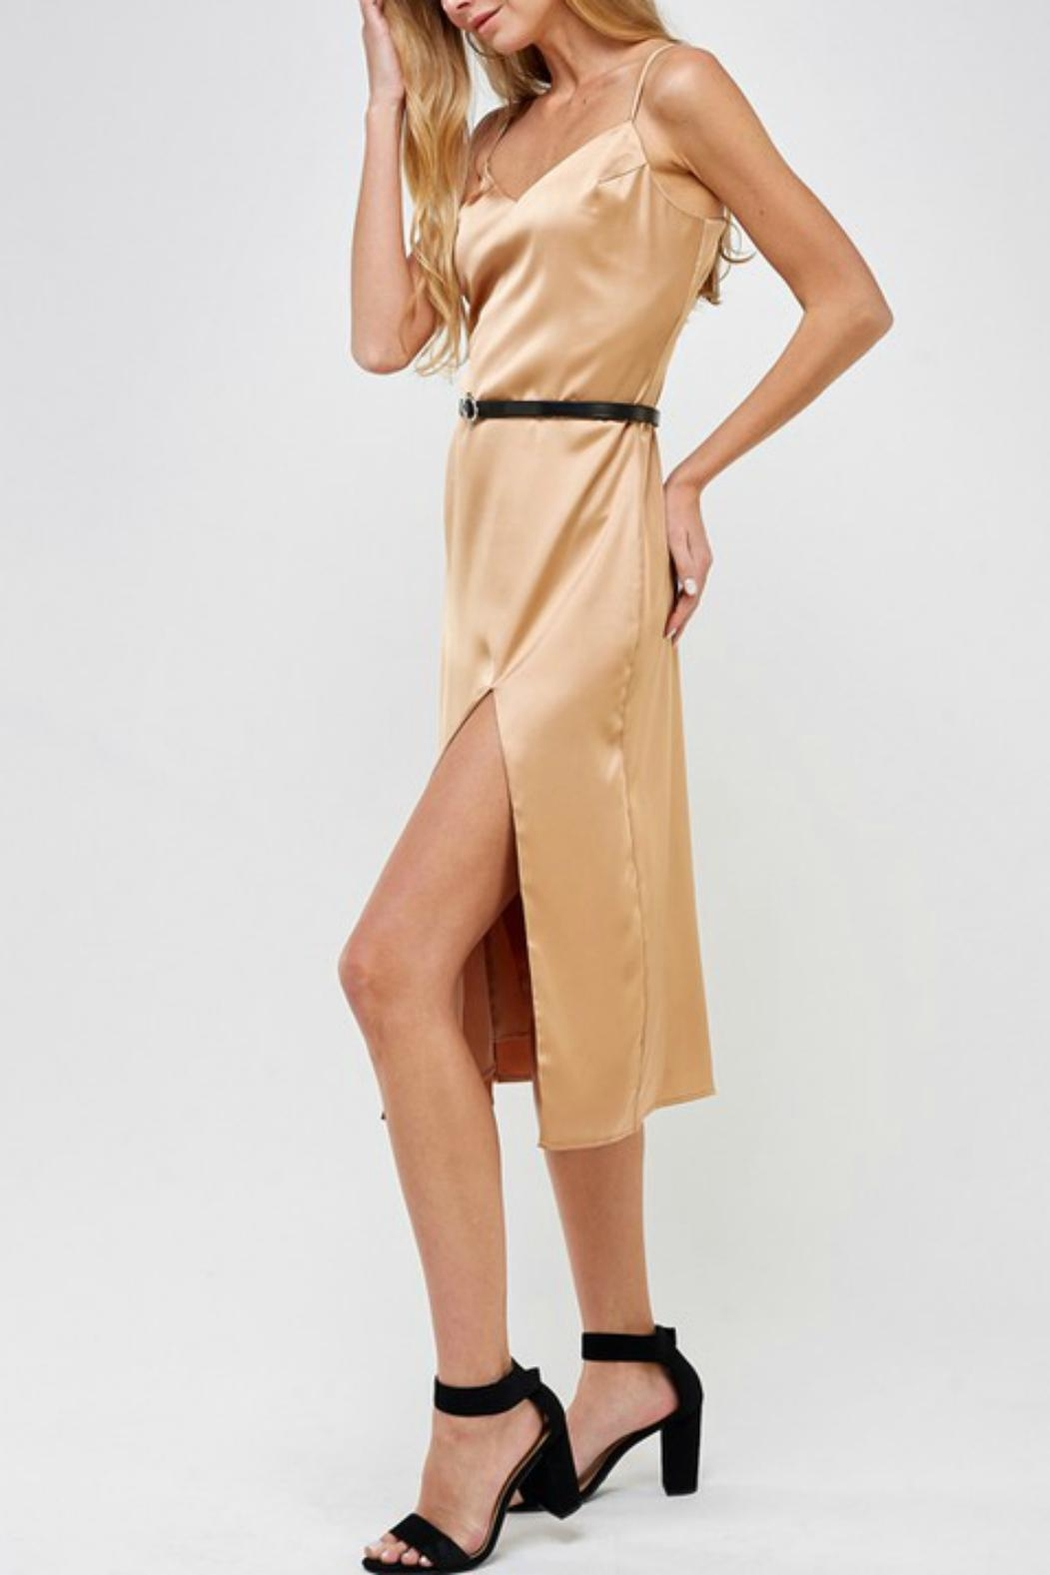 Pretty Little Things Classic Satin Dress - Front Full Image